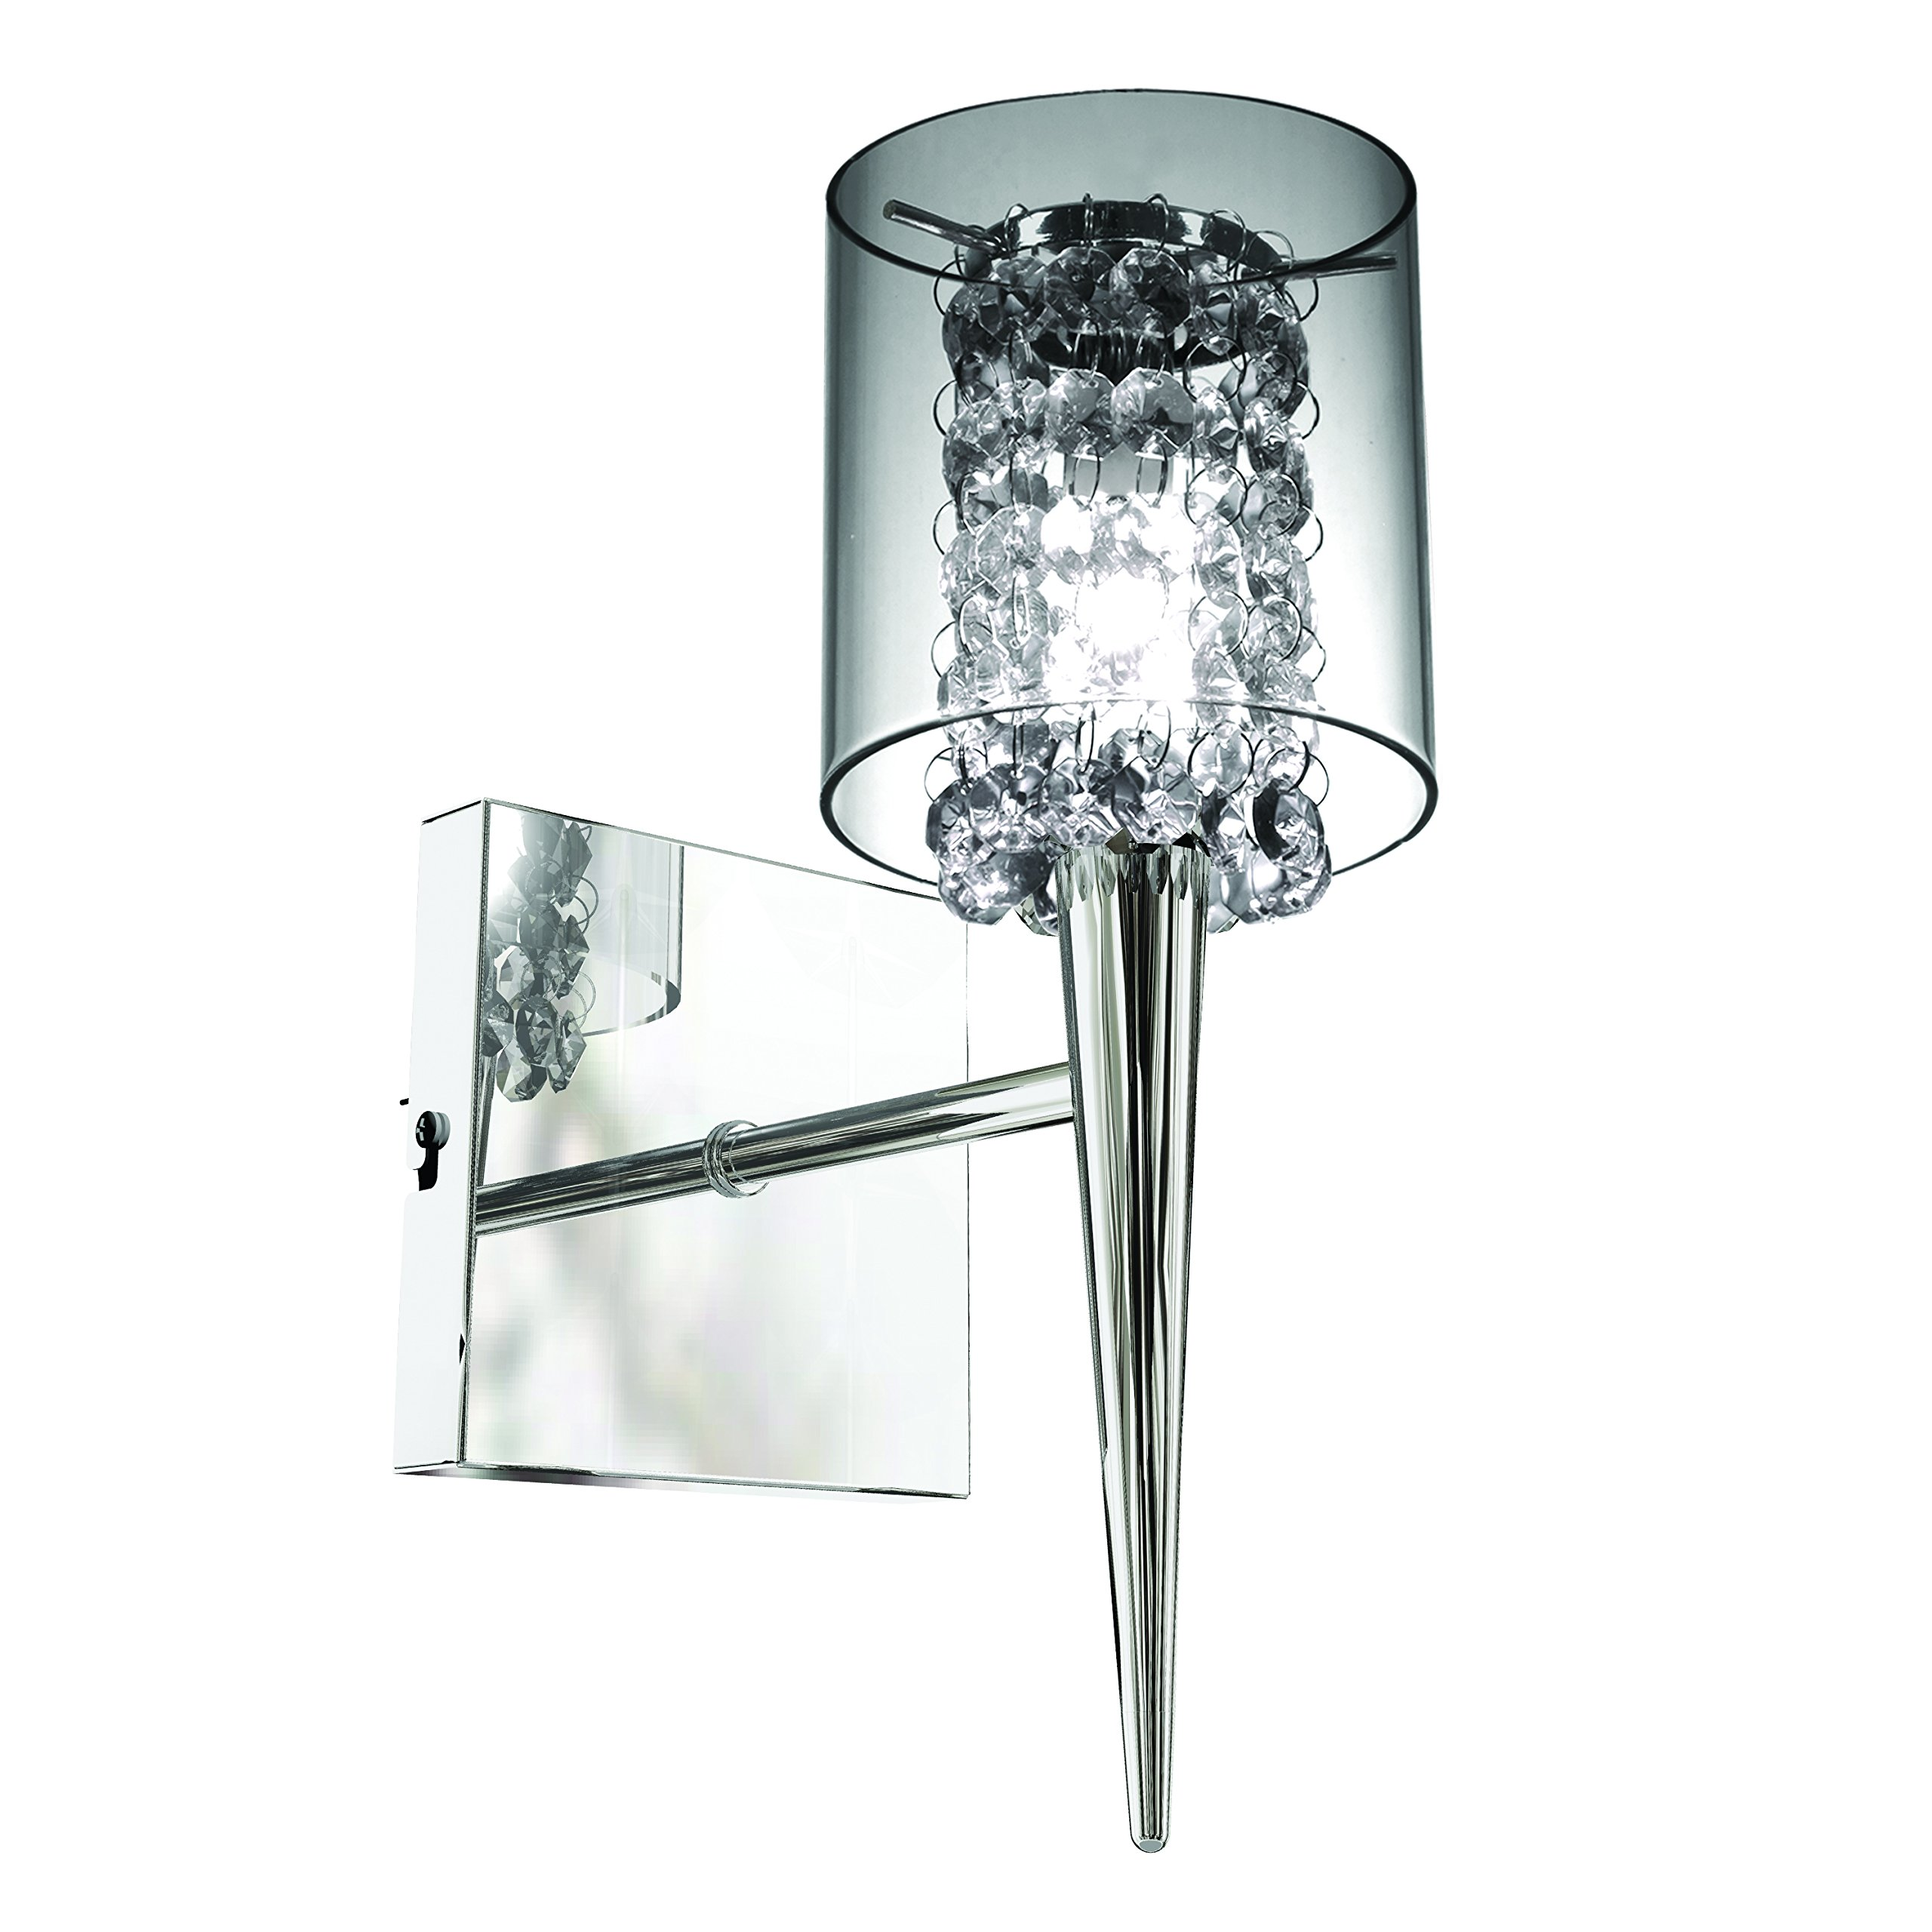 Bazz Elegant Glass Shade Single Wall Fixture, Easy Installation, Direct Wiring, Dimmable